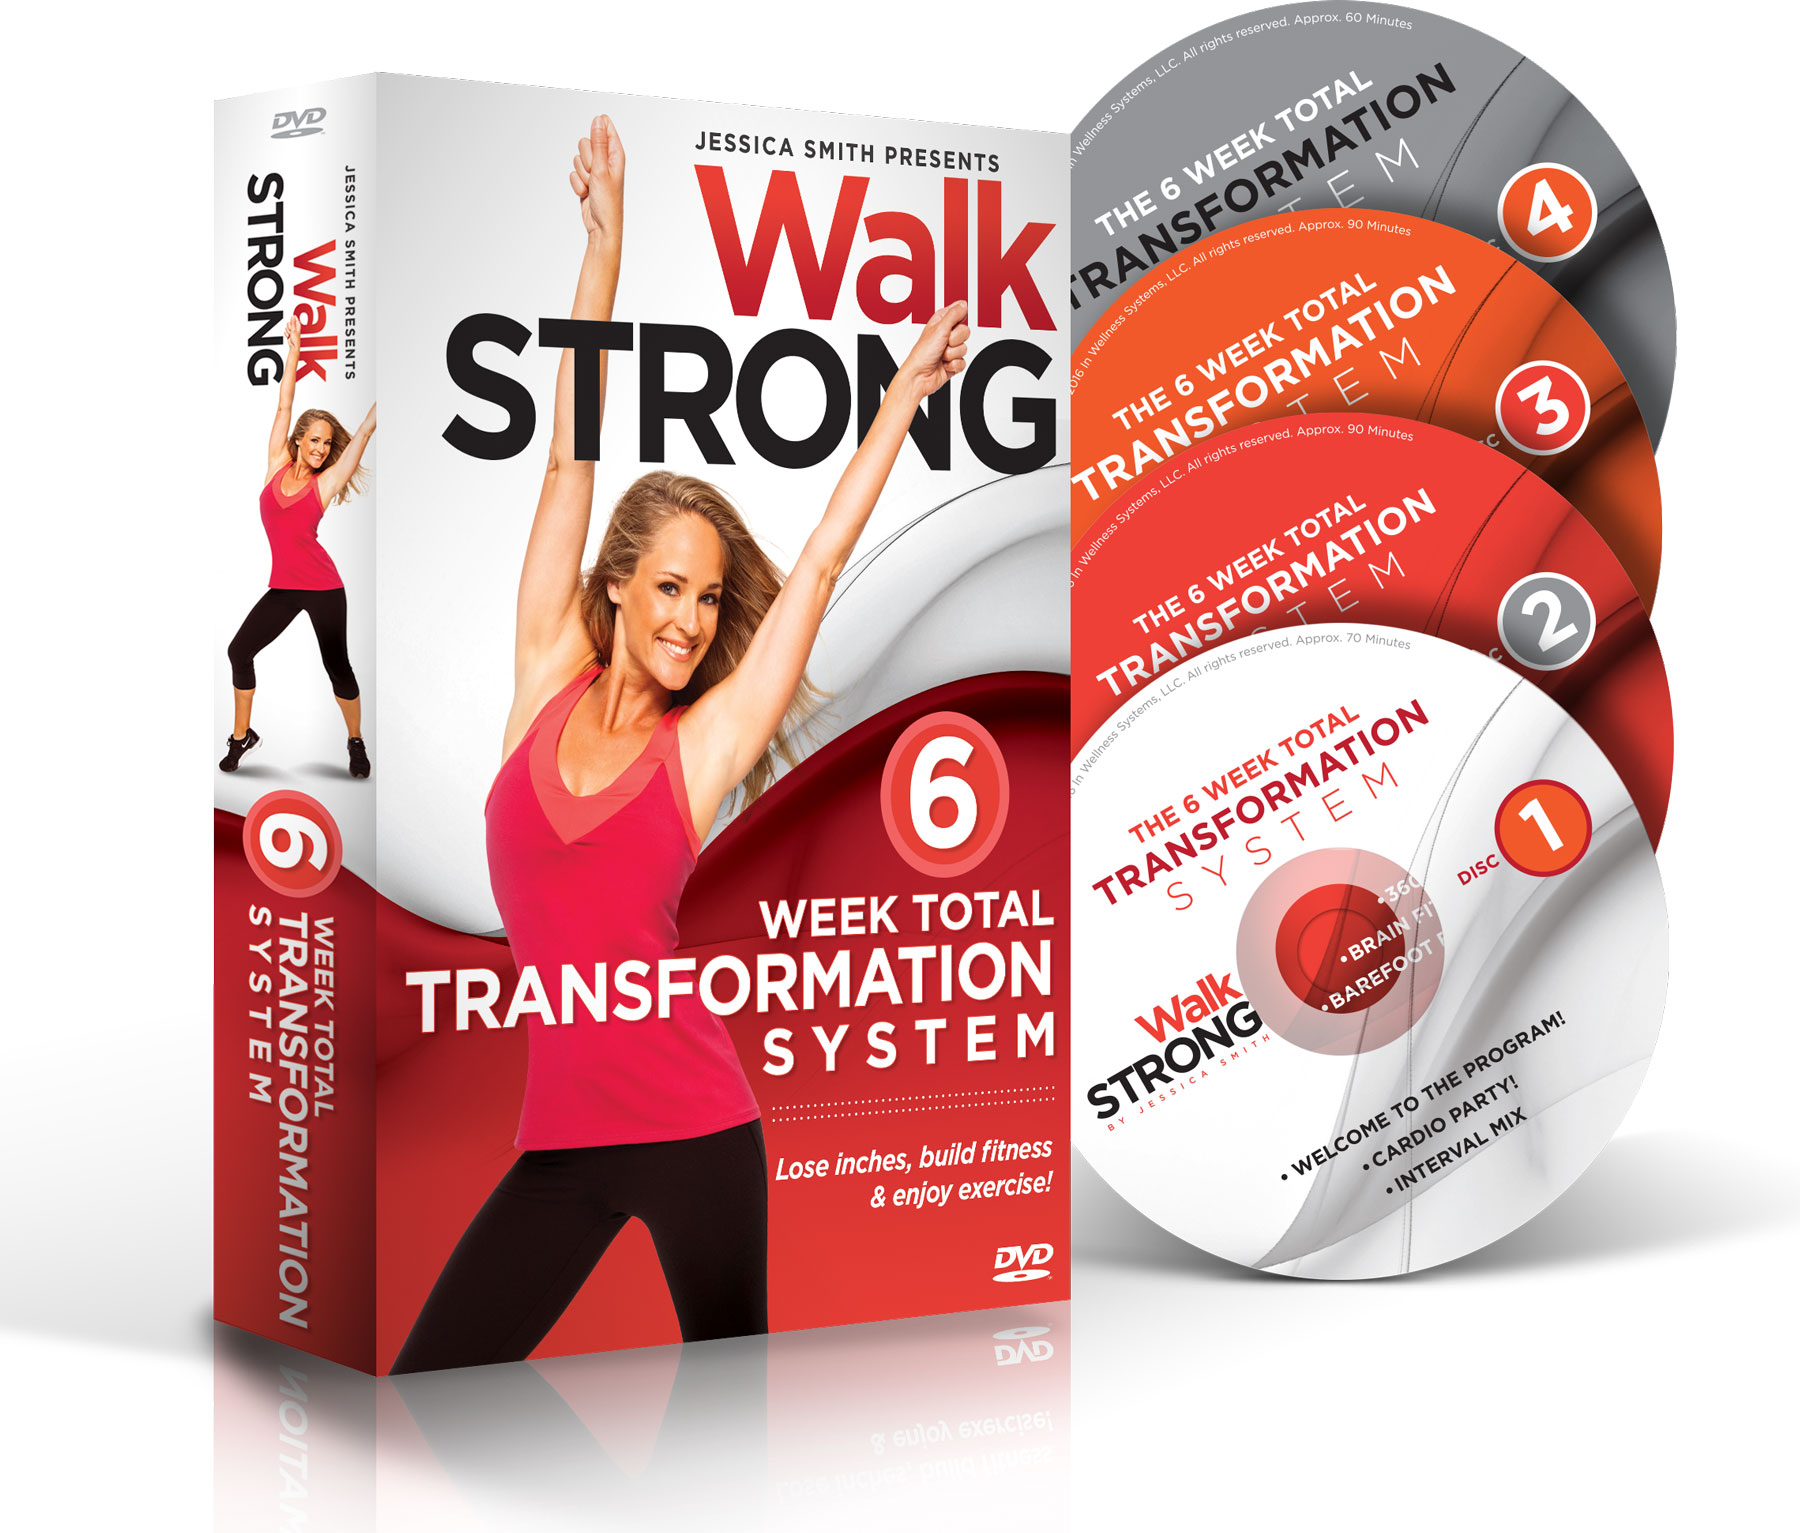 Jessica Smith's Walk Strong DVD